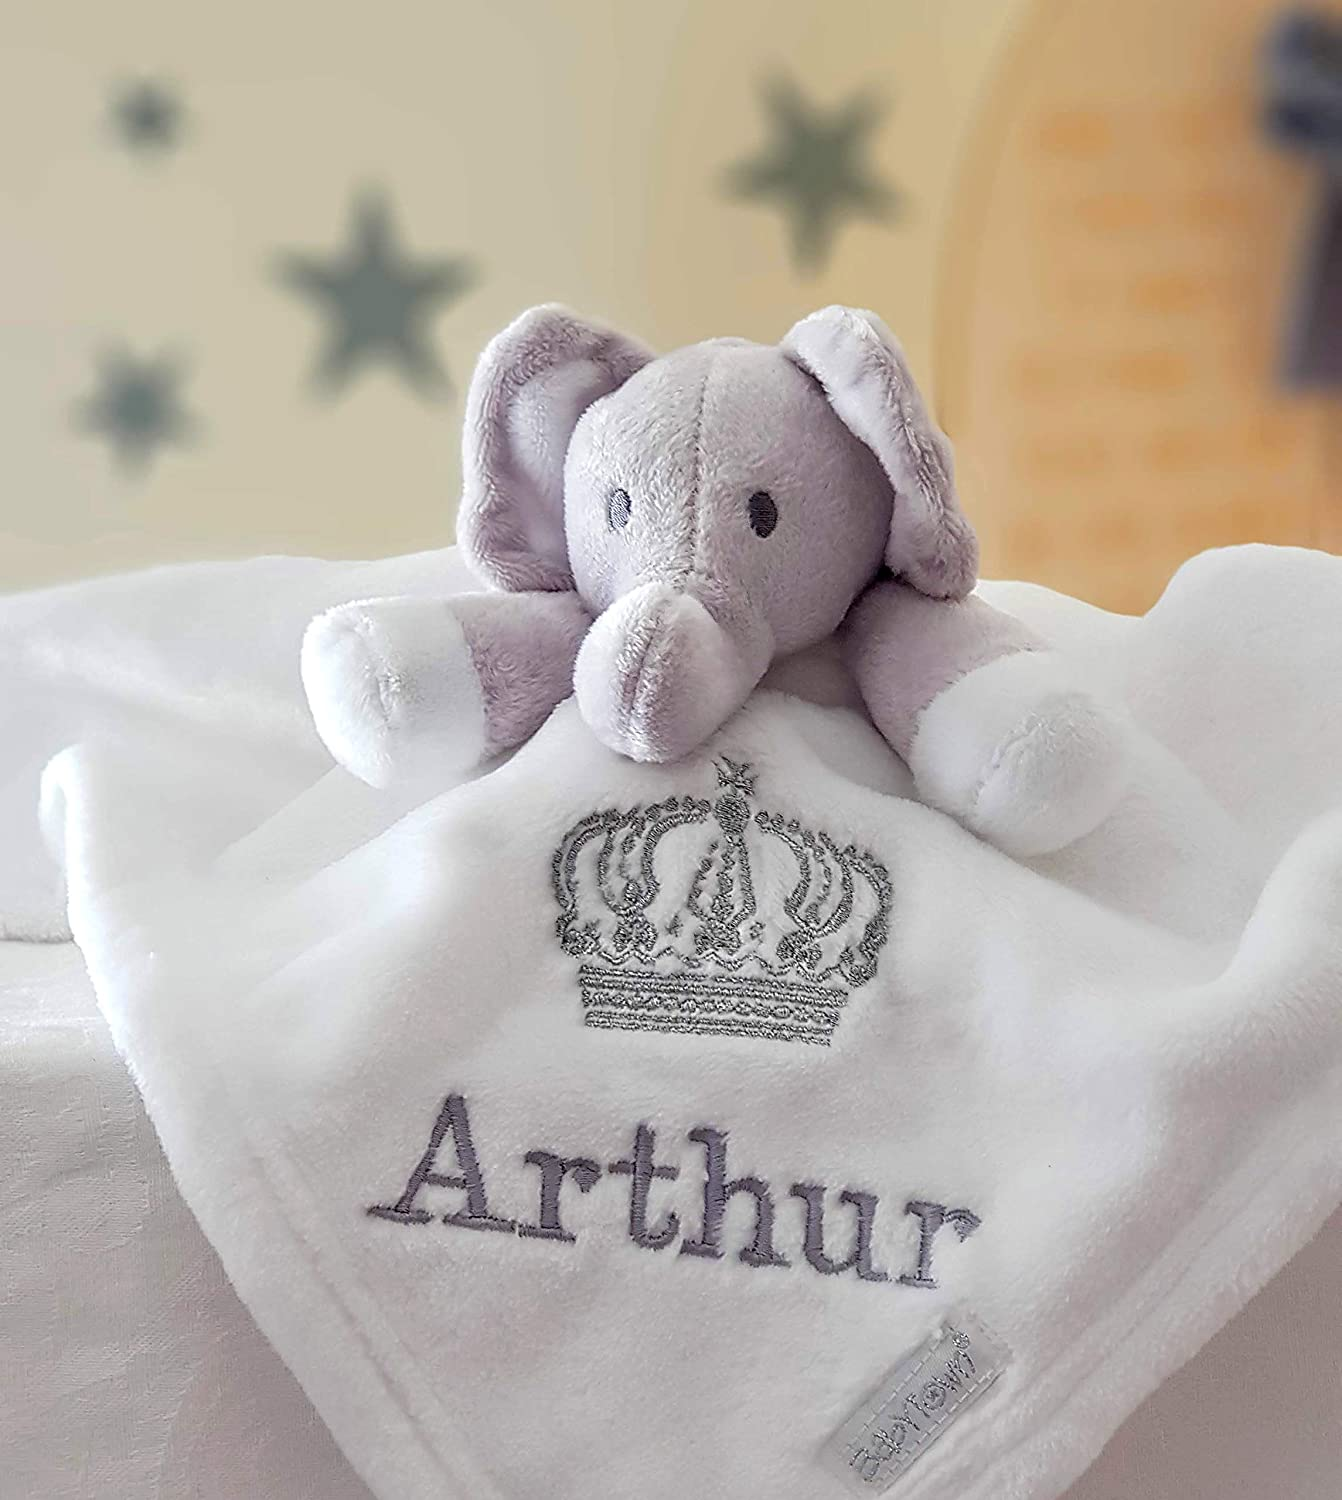 Personalised White Elephant Comforter Blanket / Soother Blanket / Royal Crown Blanket / New Baby Gift / Personalised Comforter